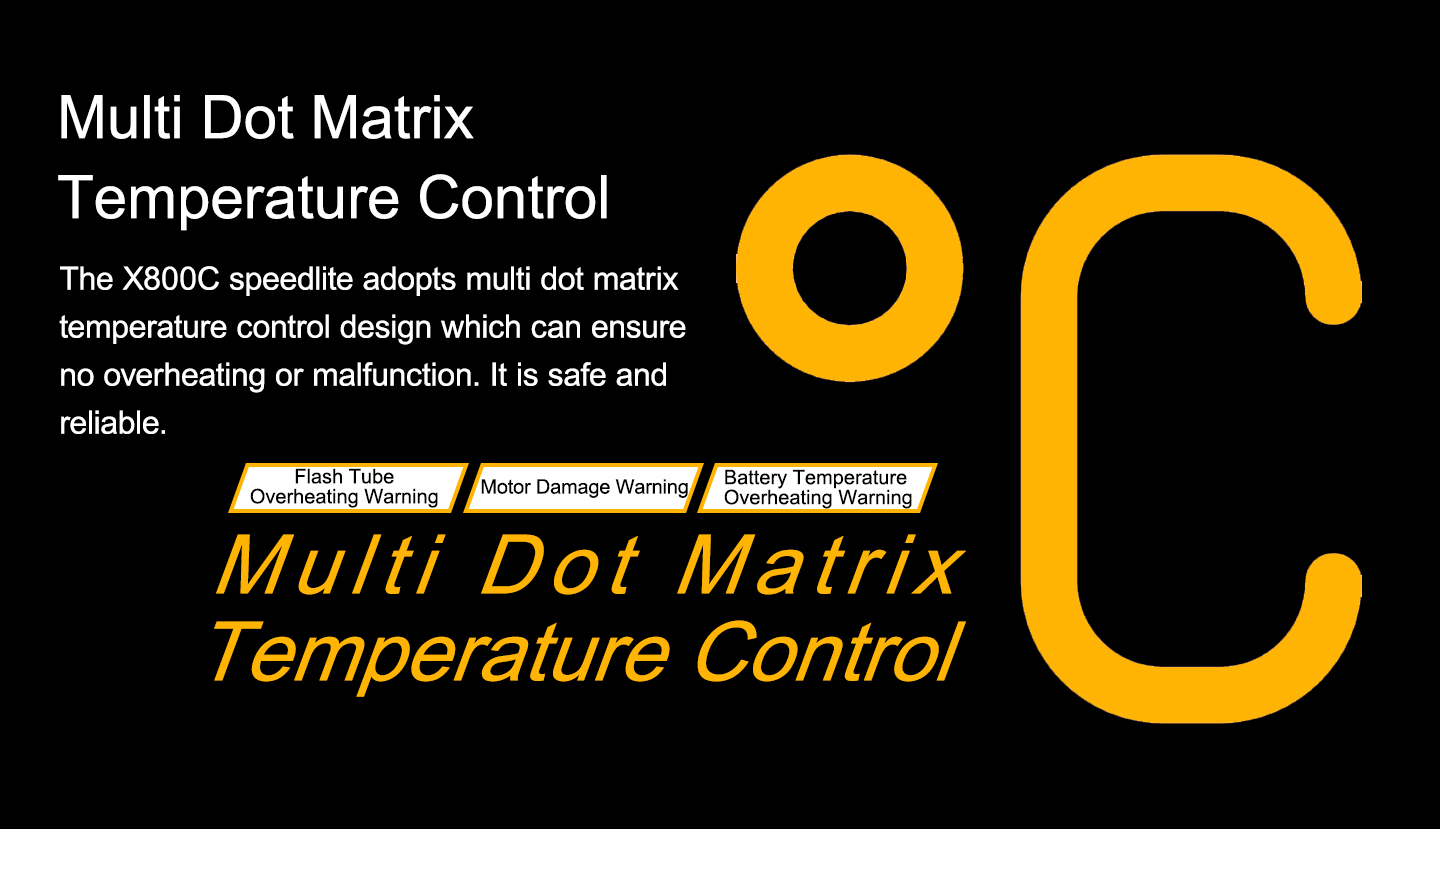 Multi Dot Matrix Temperature Control